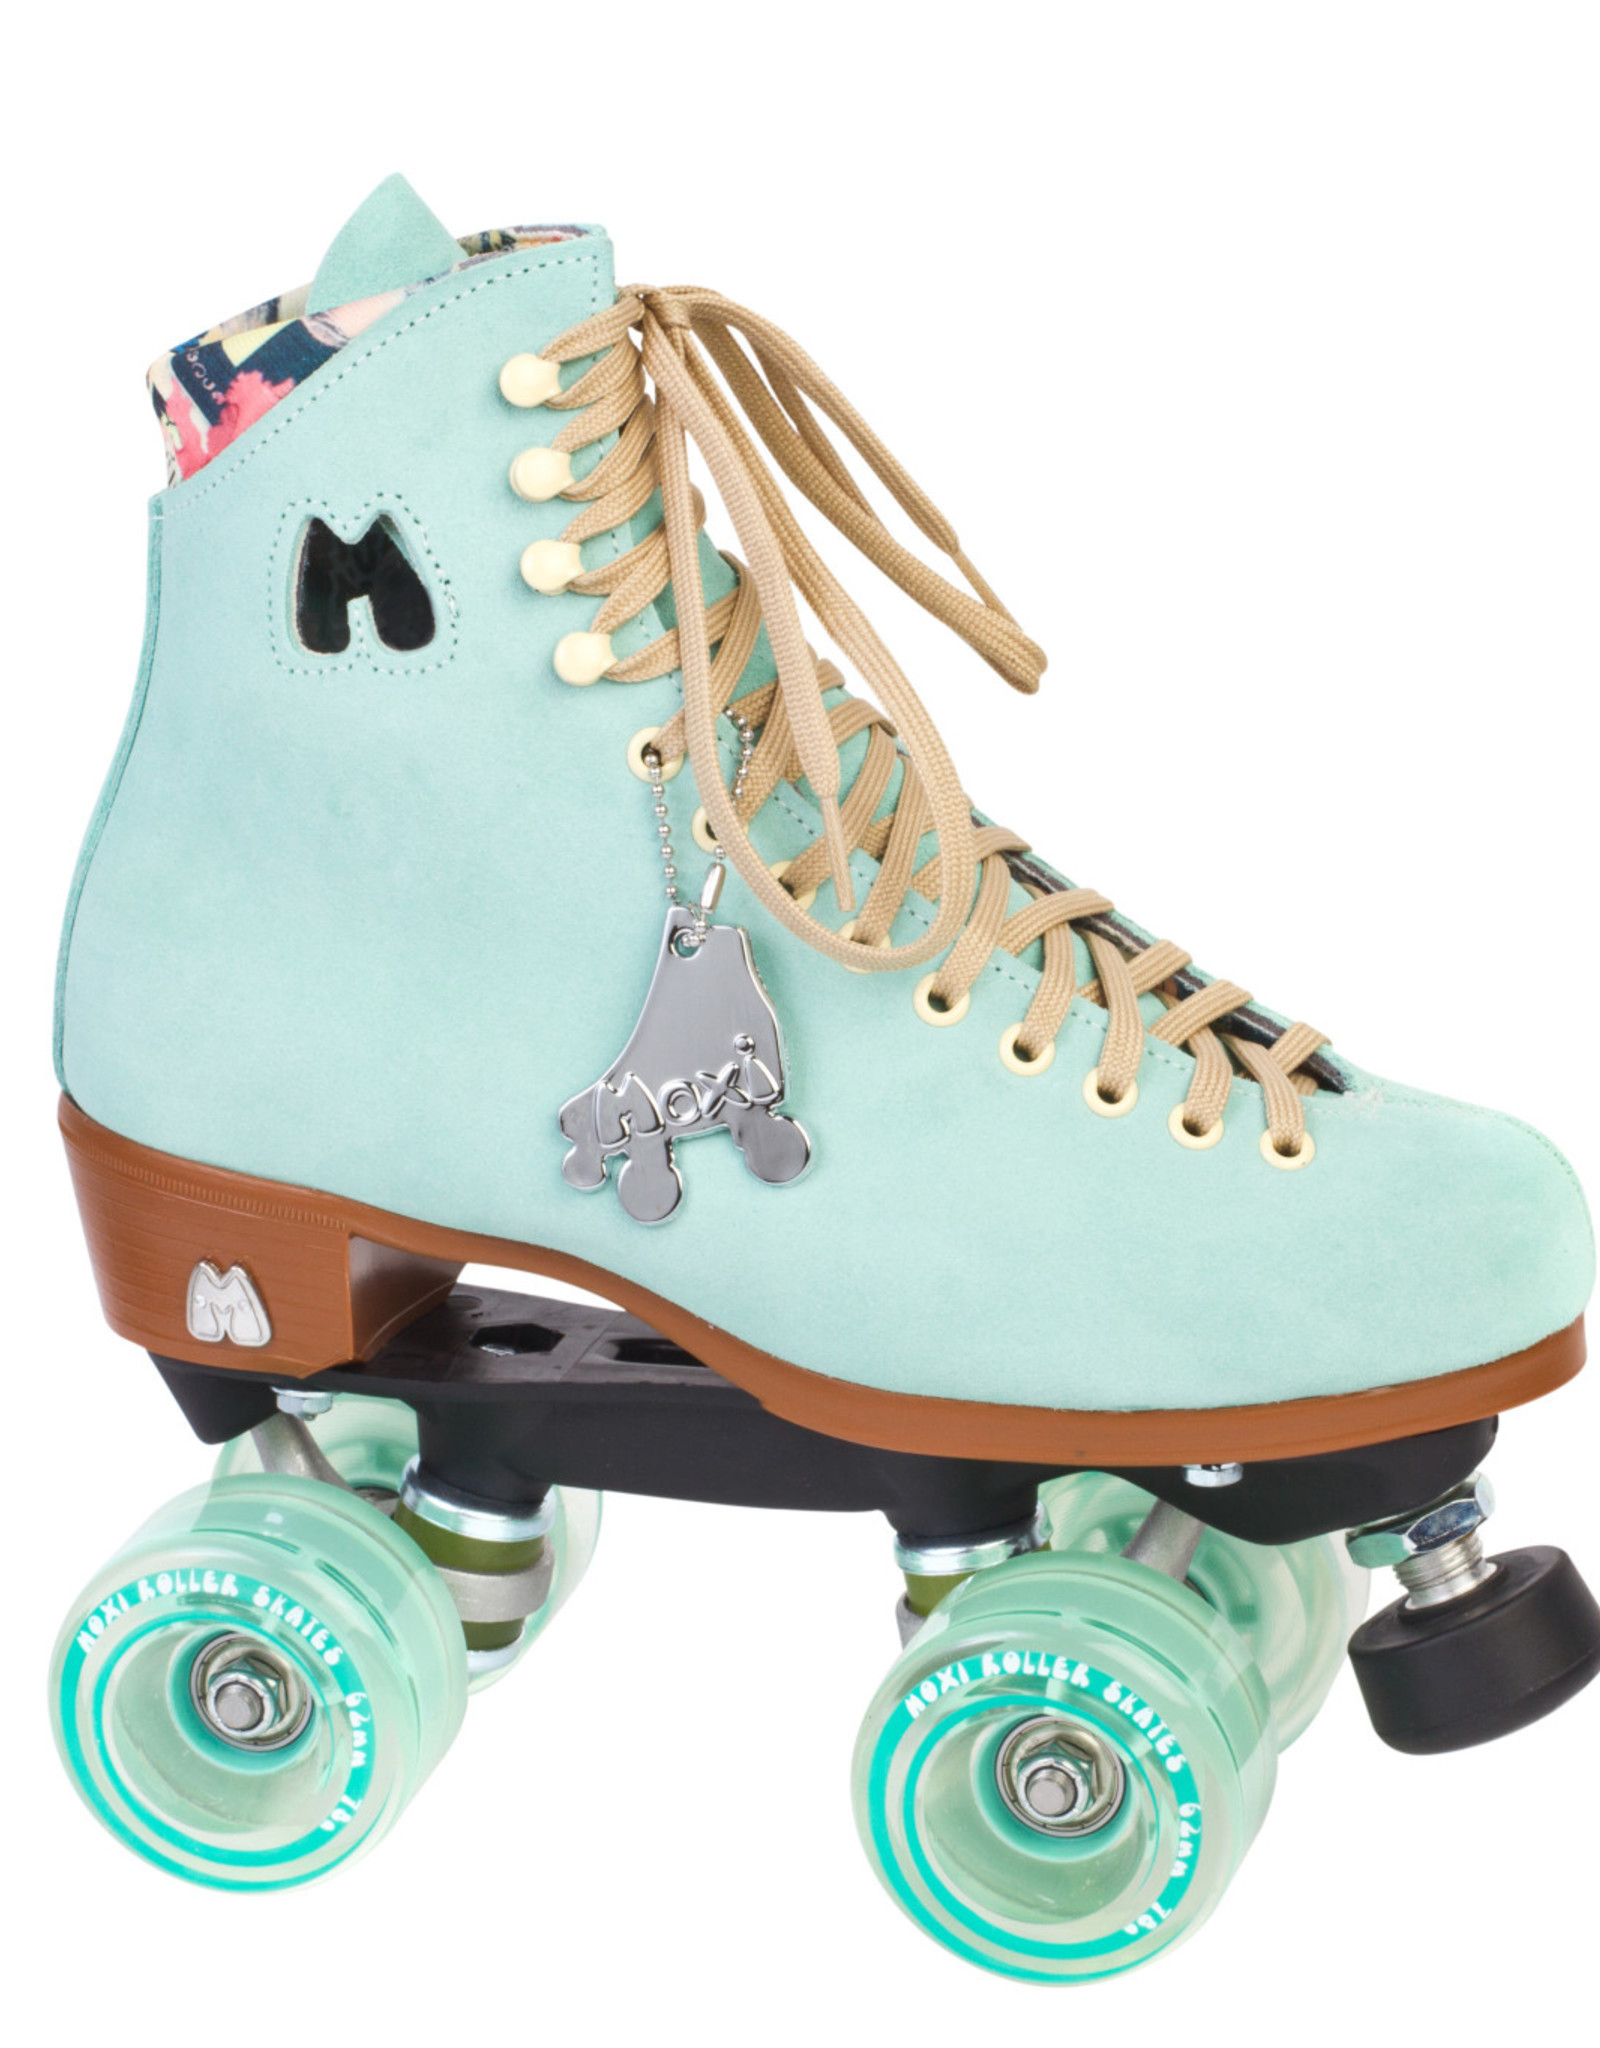 Moxi Moxi Lolly Skate Indoor Package